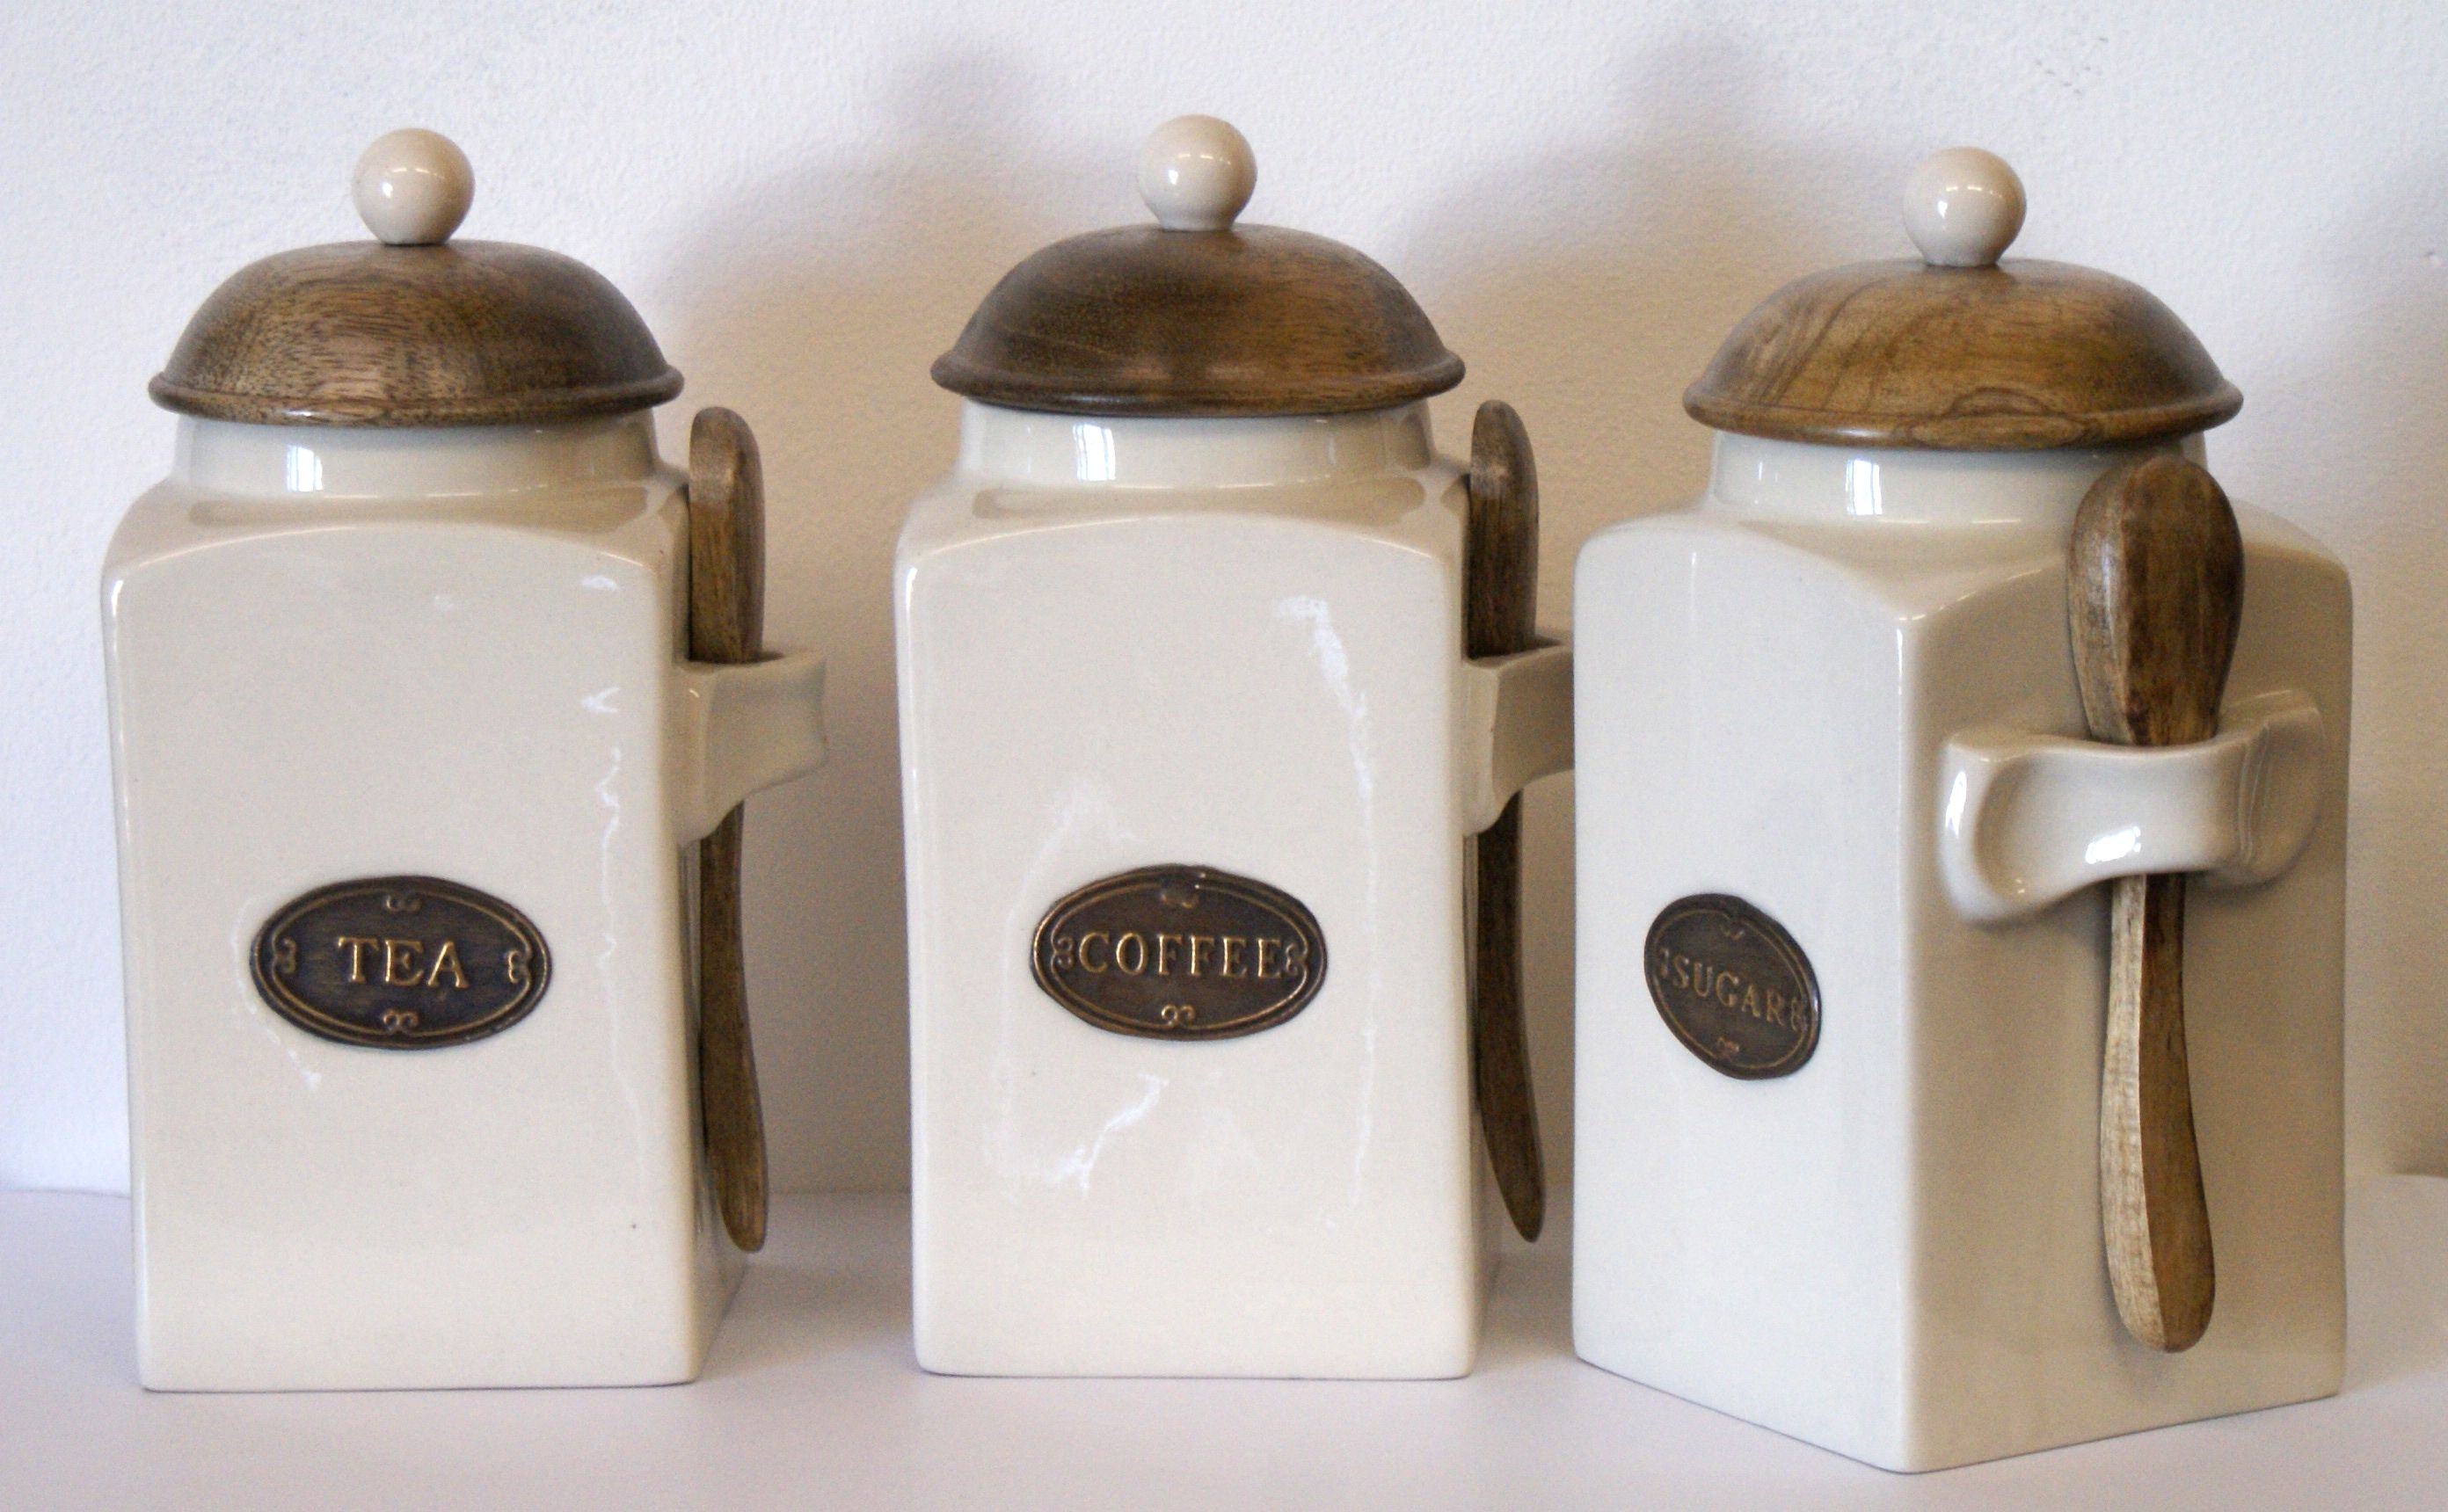 Country Kitchen Tea Coffee And Sugar Canisters Each With A Wooden Spoon Lid Ceramic Handle Stamped Metal Name Plaque